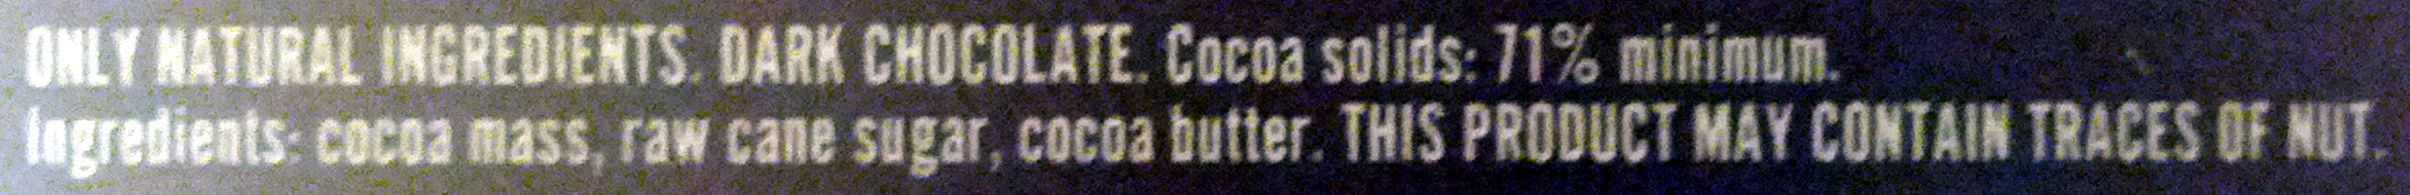 Willie's cacao - Ingredients